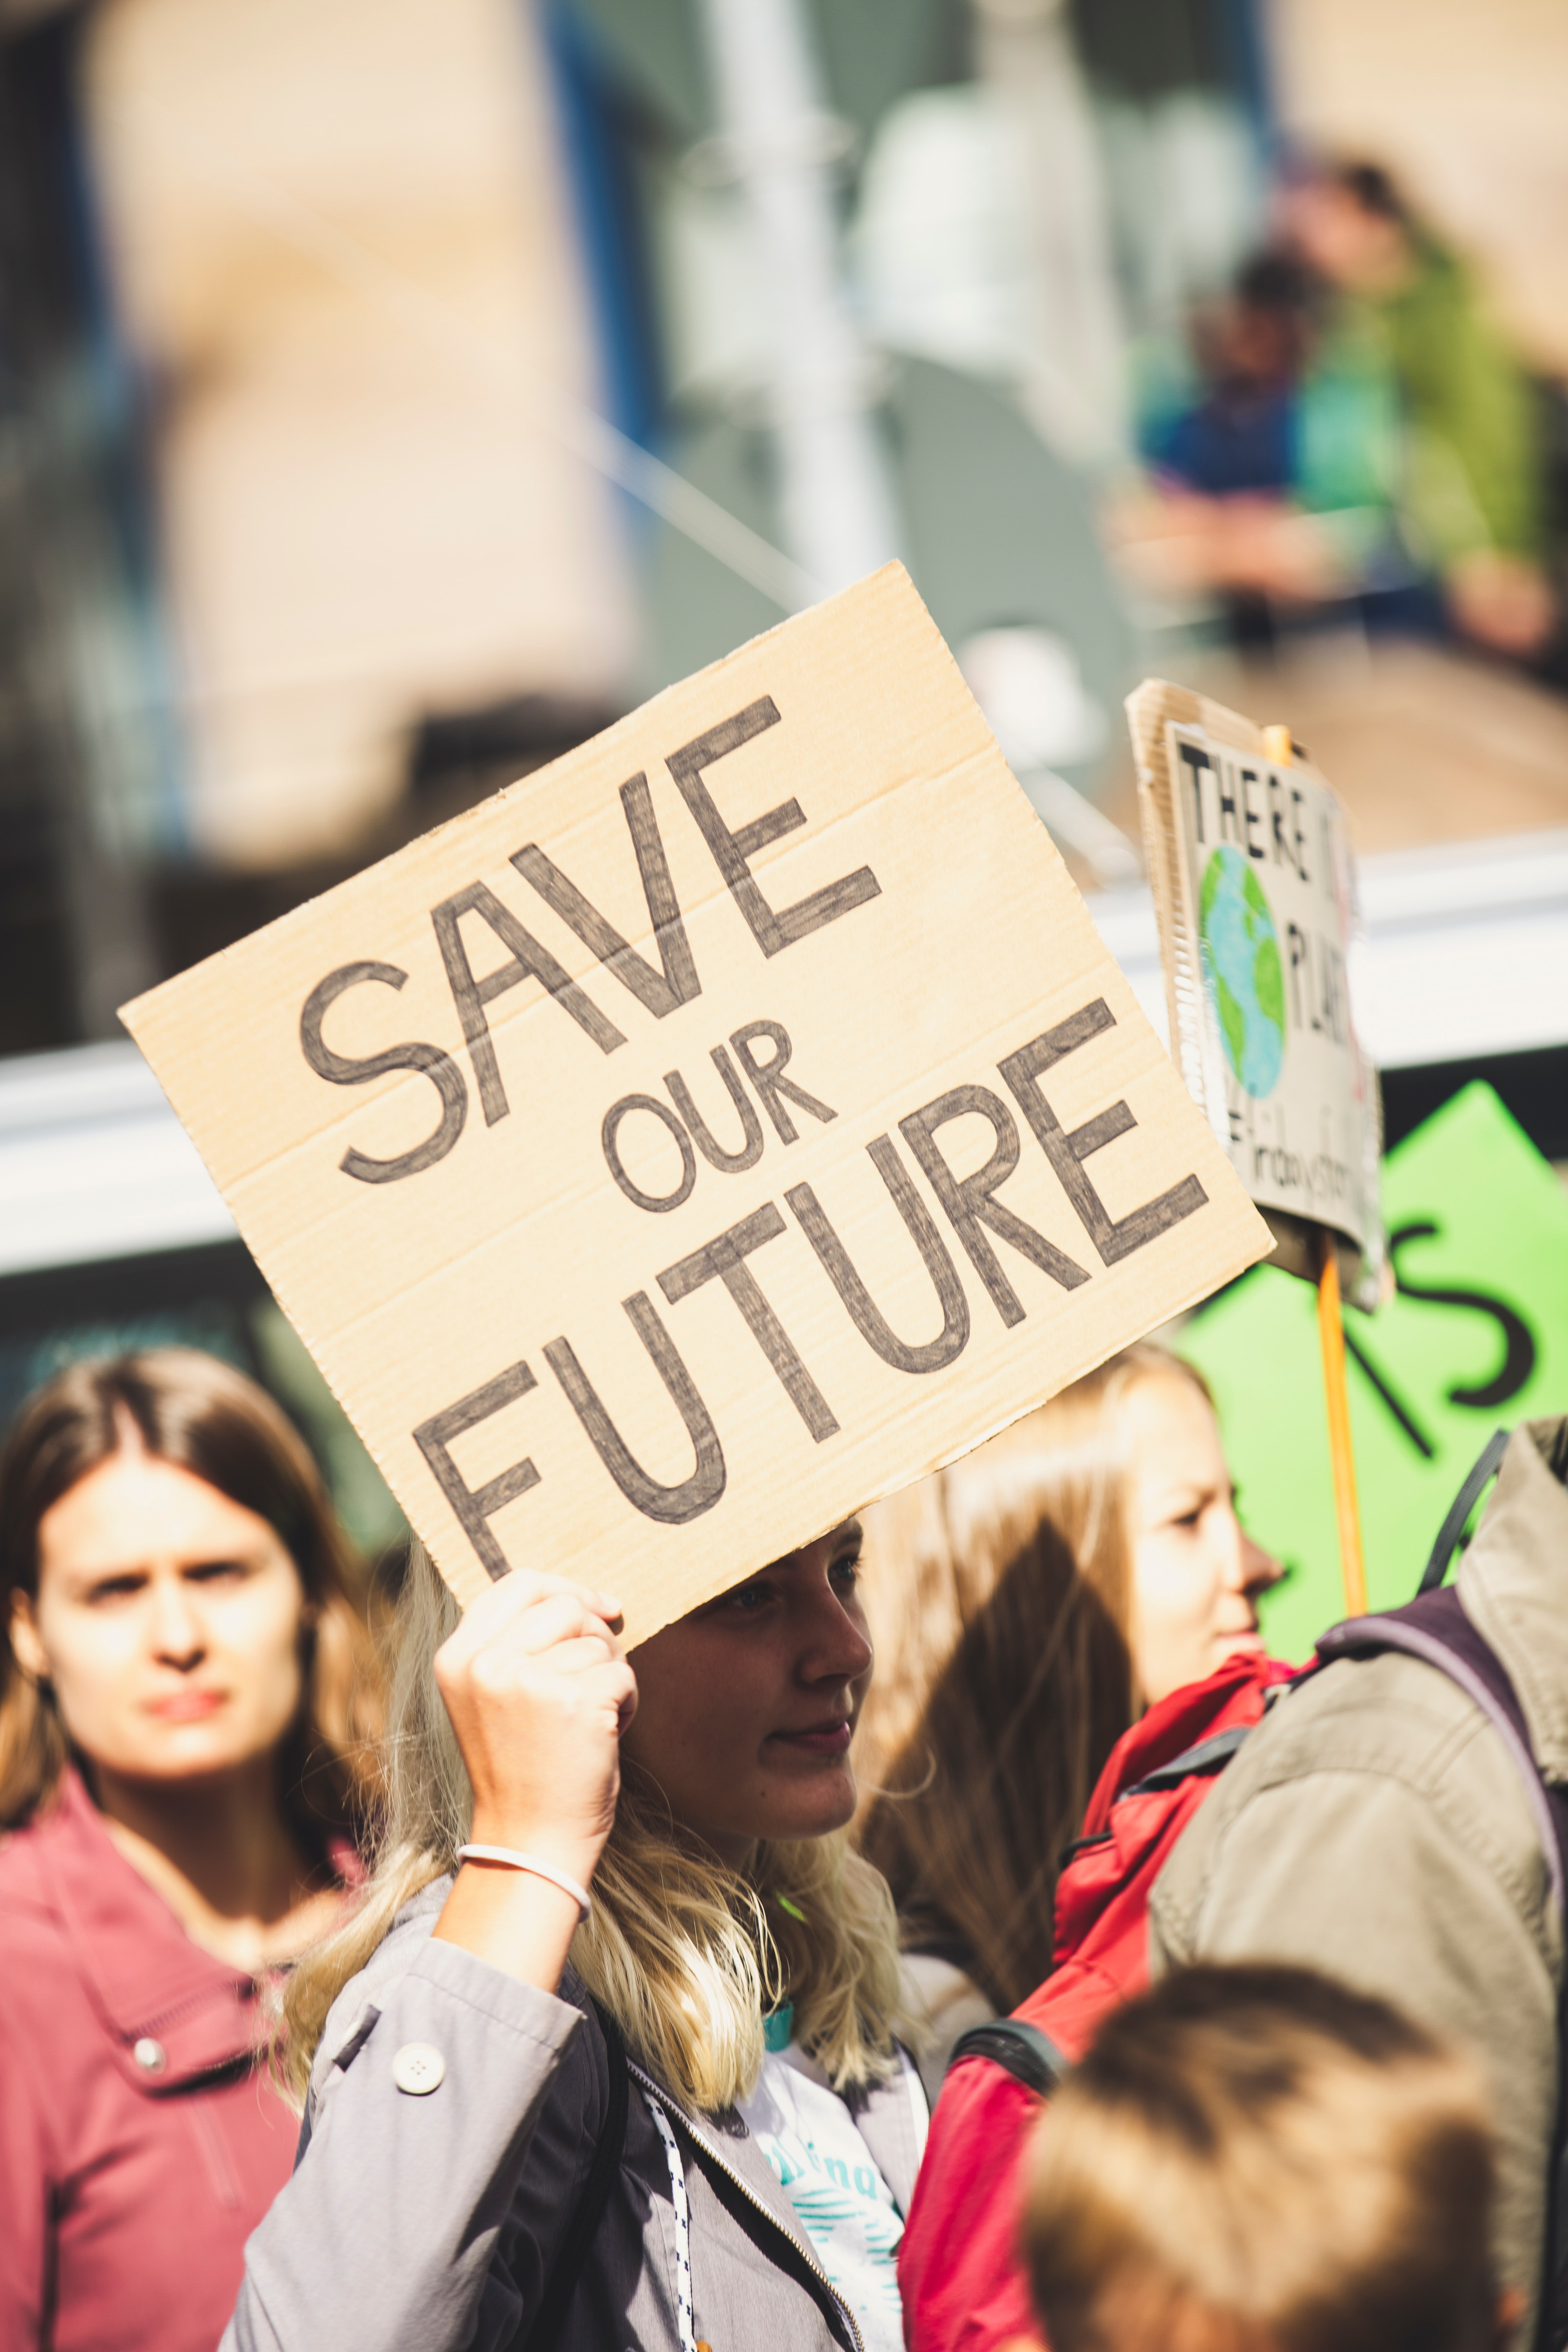 "A photo of someone at a protest holding a sign that says ""Save Our Future."" Photo courtesy Markus Spiske on Unsplash."